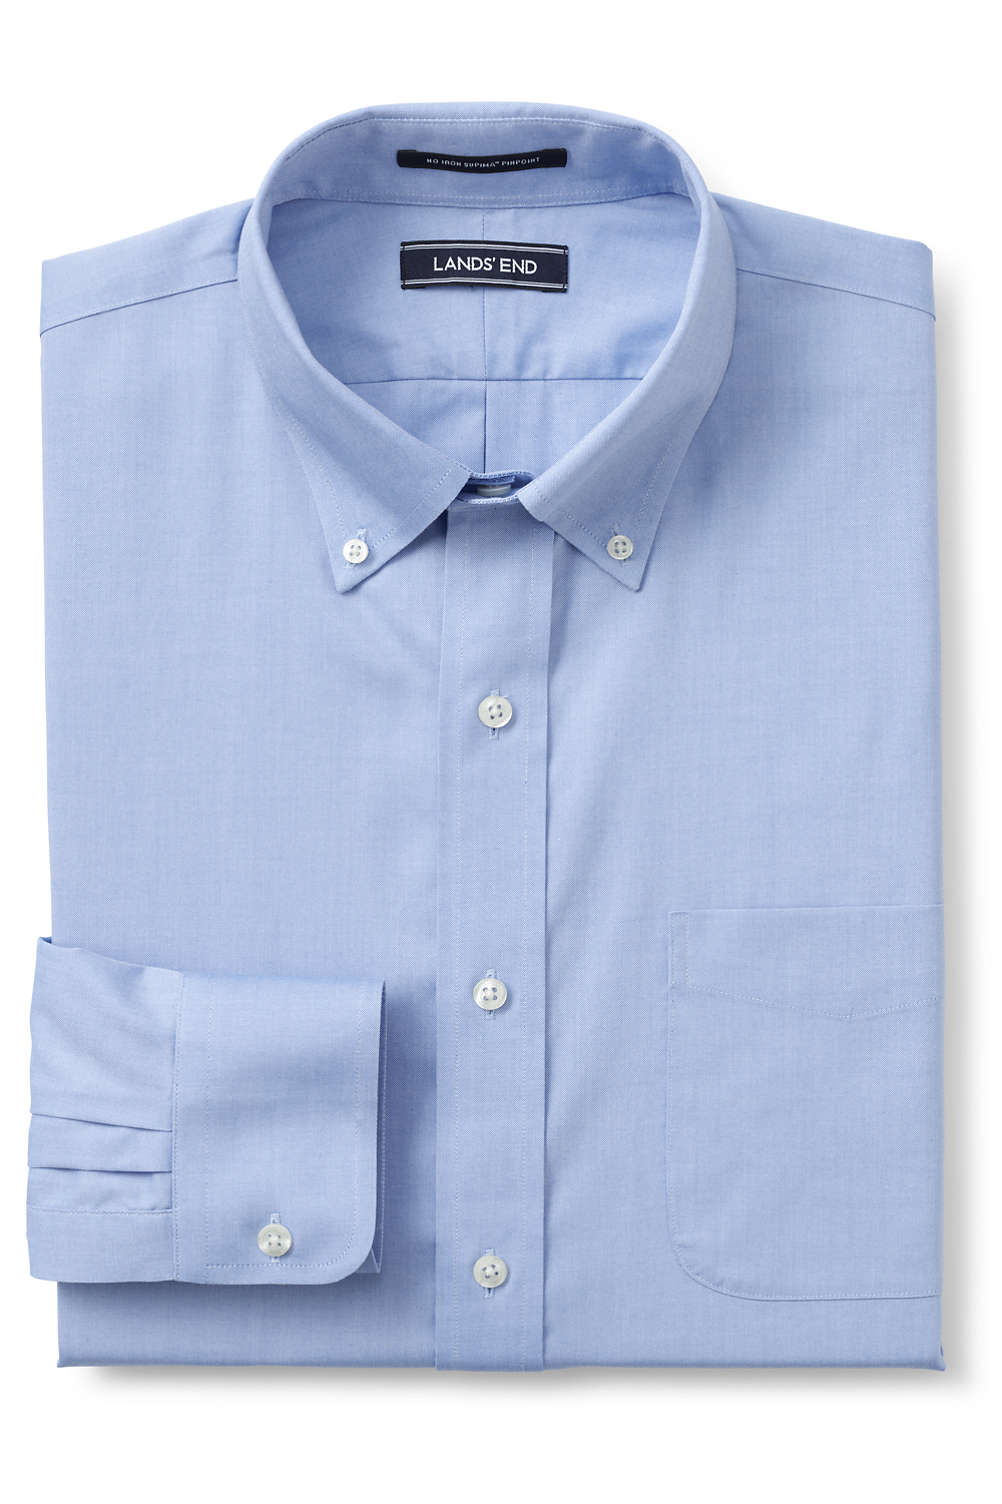 Men S Comfort Collar No Iron Supima Pinpoint Shirt From Lands End